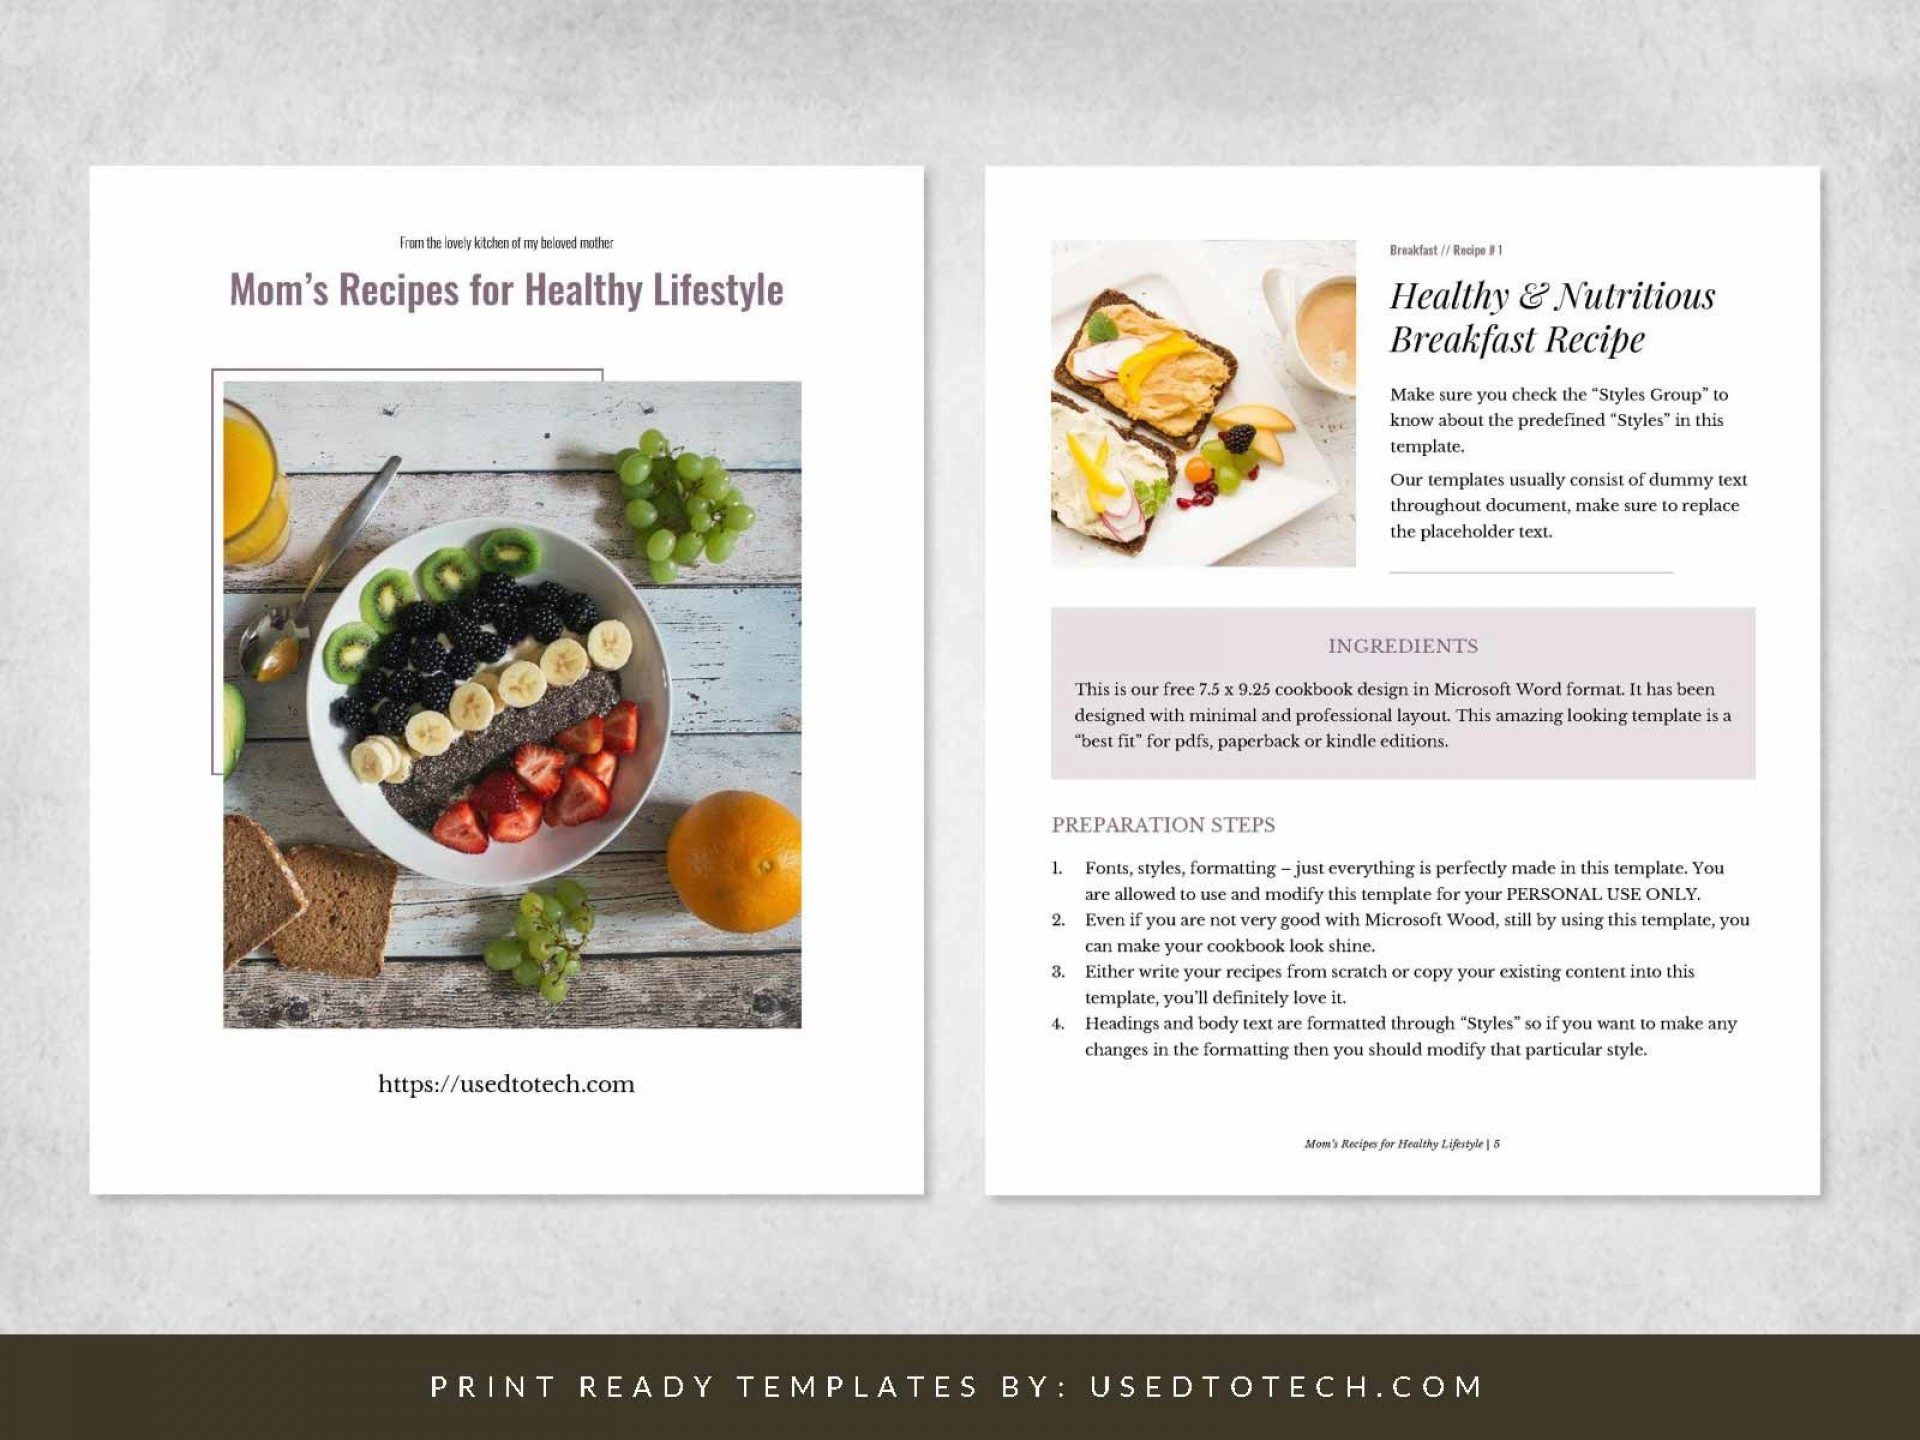 004 Surprising Make Your Own Cookbook Template Free High Resolution  Download1920